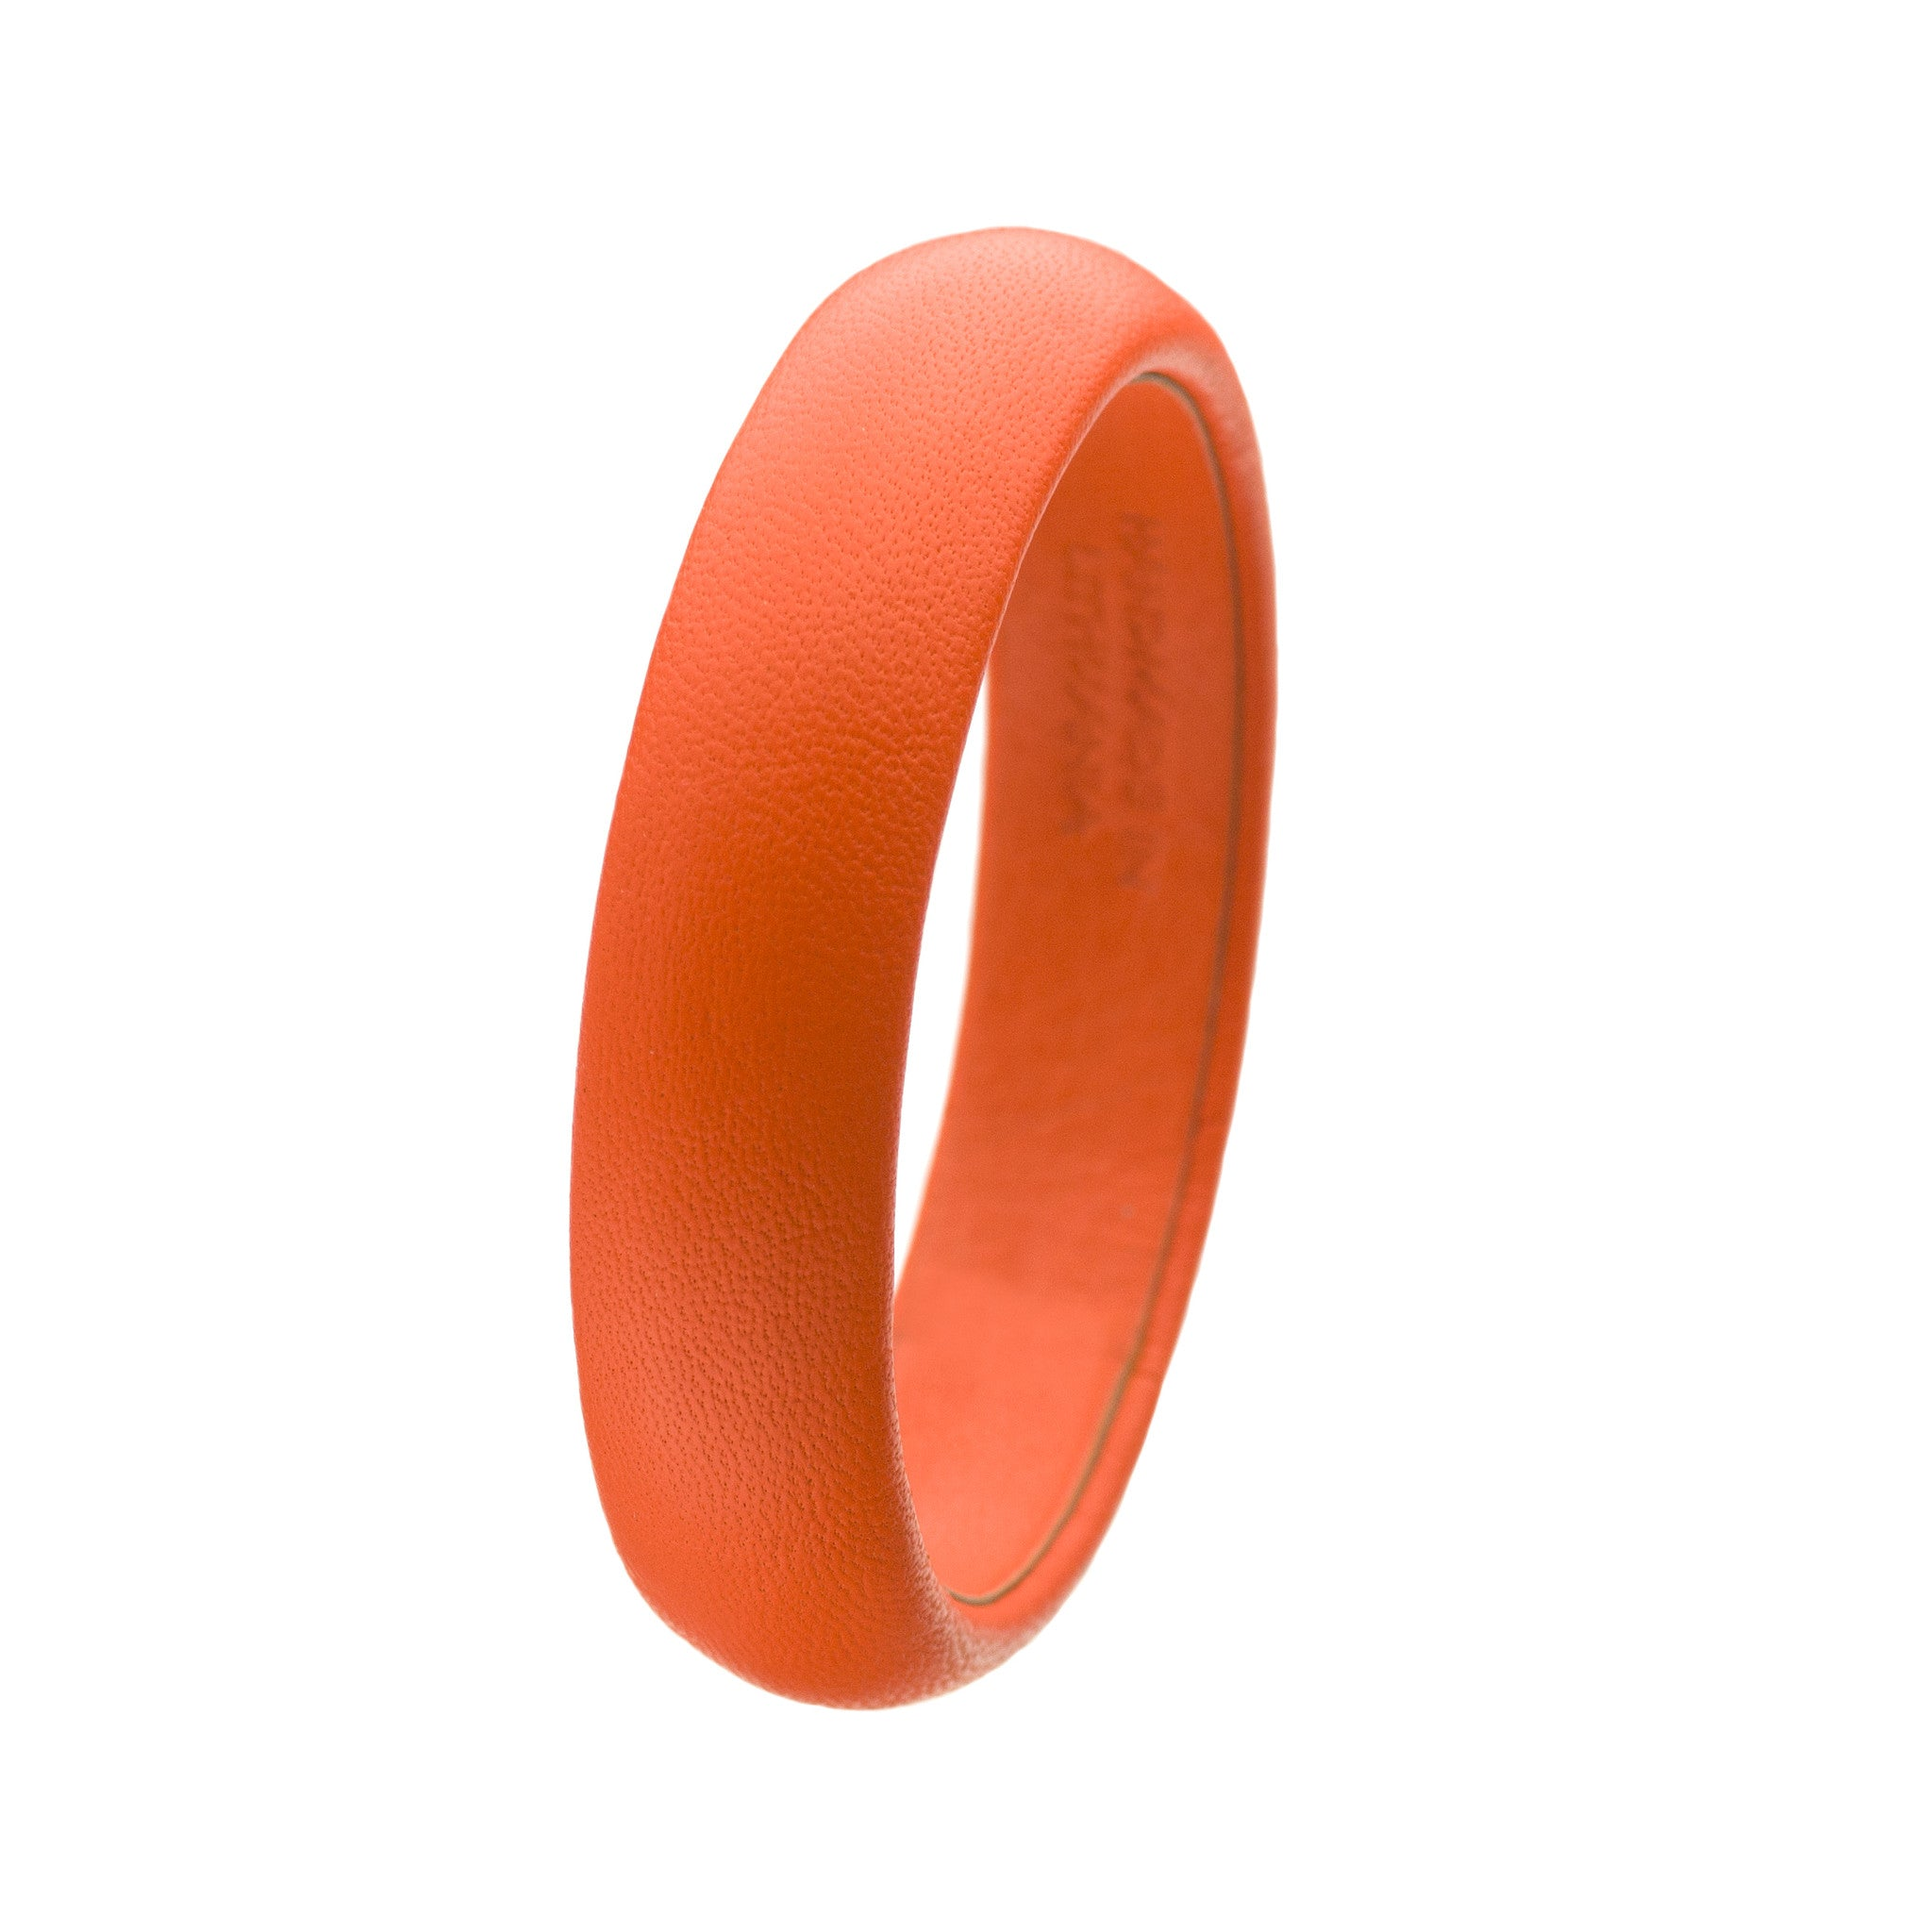 Fluorescent Neon Orange Leather Bangle Bracelet sd1Twenty5 single